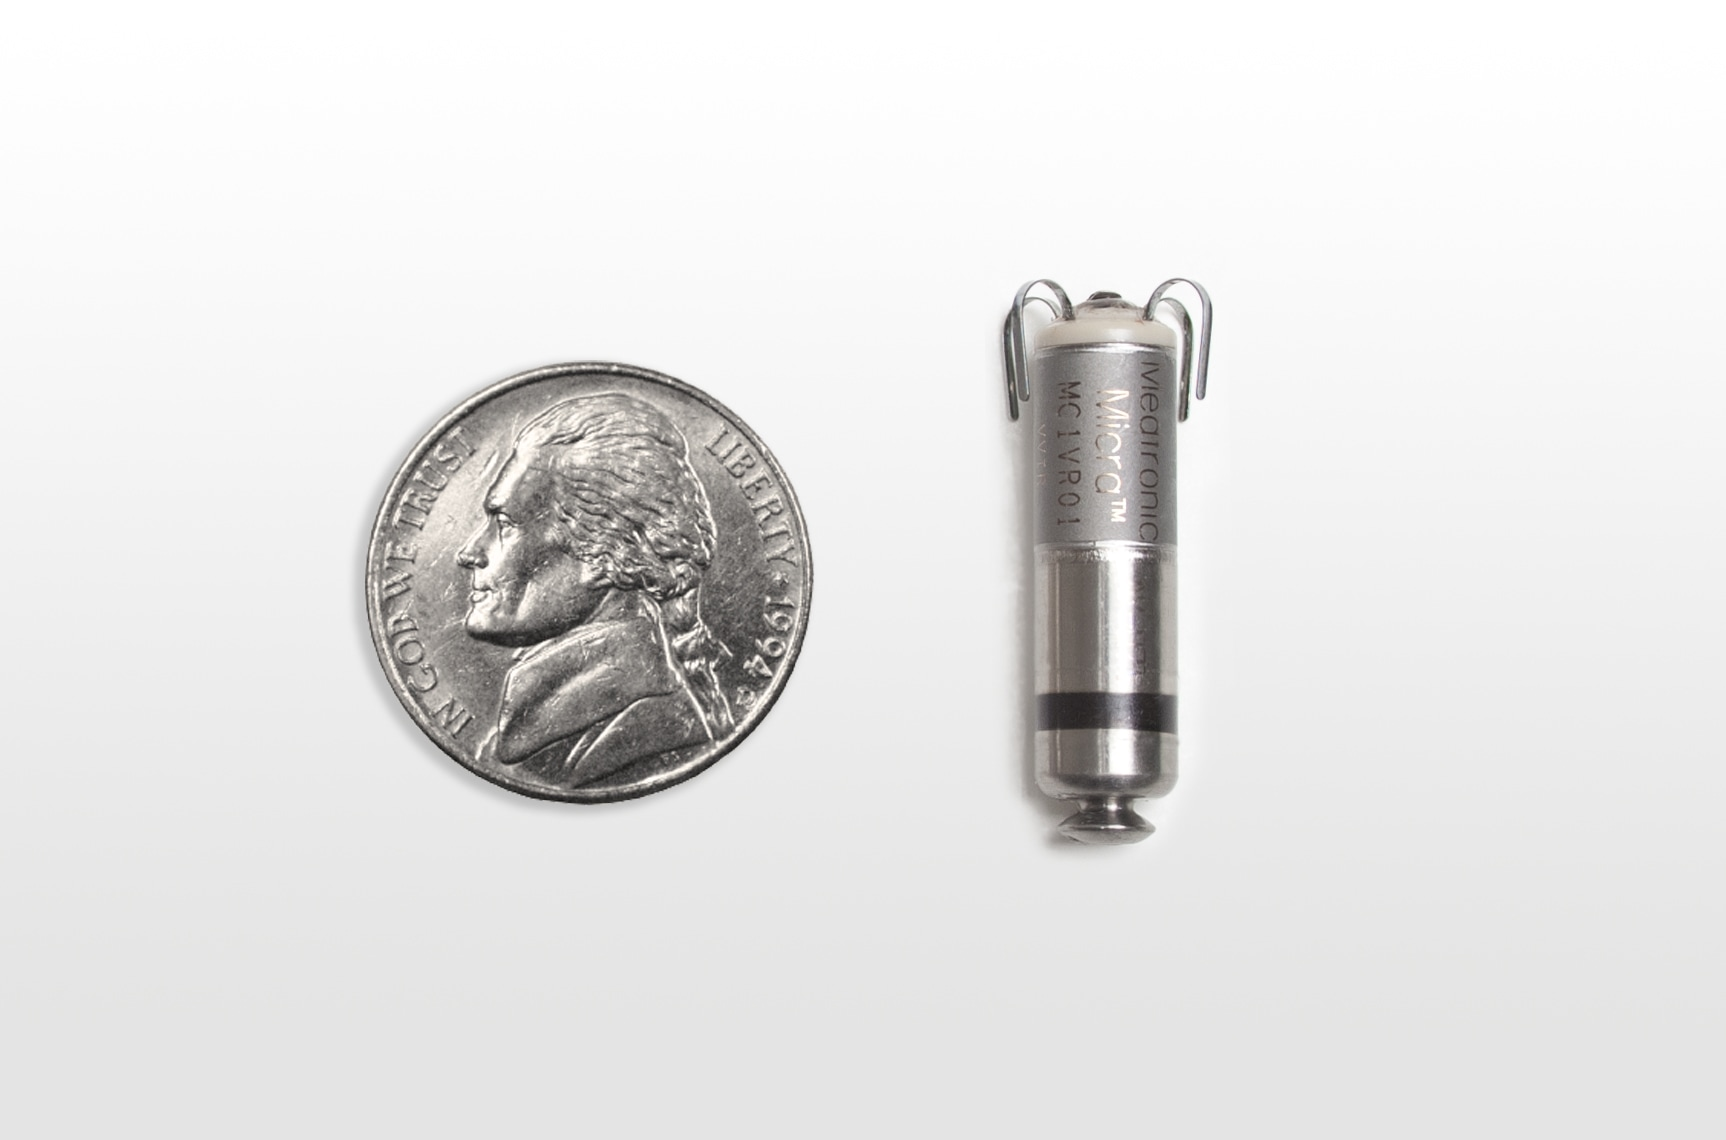 Fda Approves Worlds Smallest Pacemaker For Heart Patients